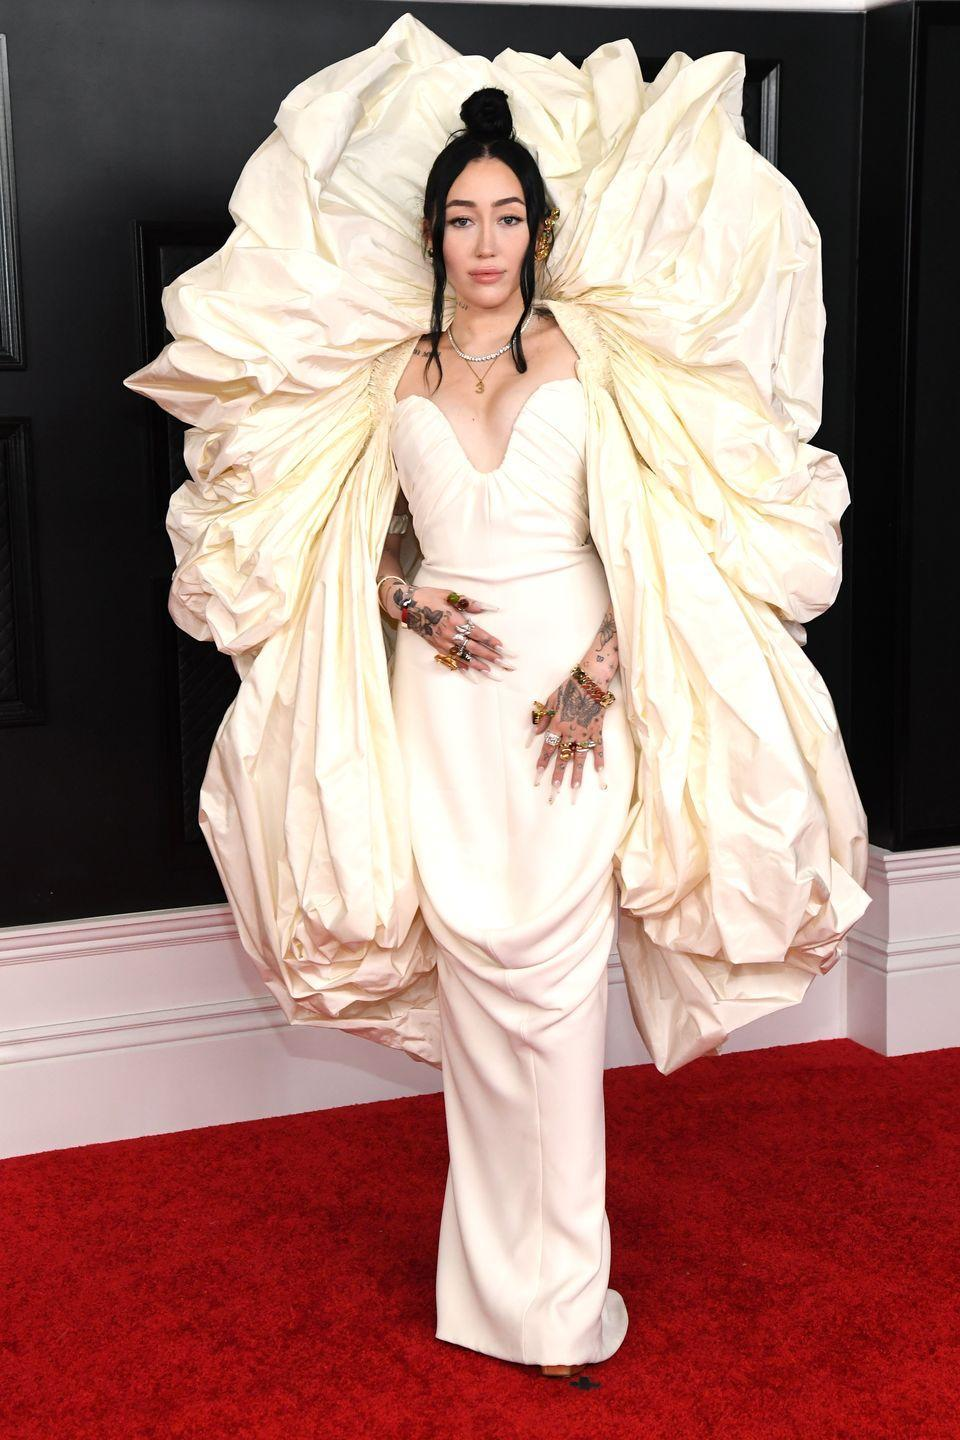 <p>The younger sister of Miley Cyrus – who has made a name for herself on the red carpet – made sure to stand out at the Grammys wearing a striking Schiaparelli haute couture ballgown.</p>